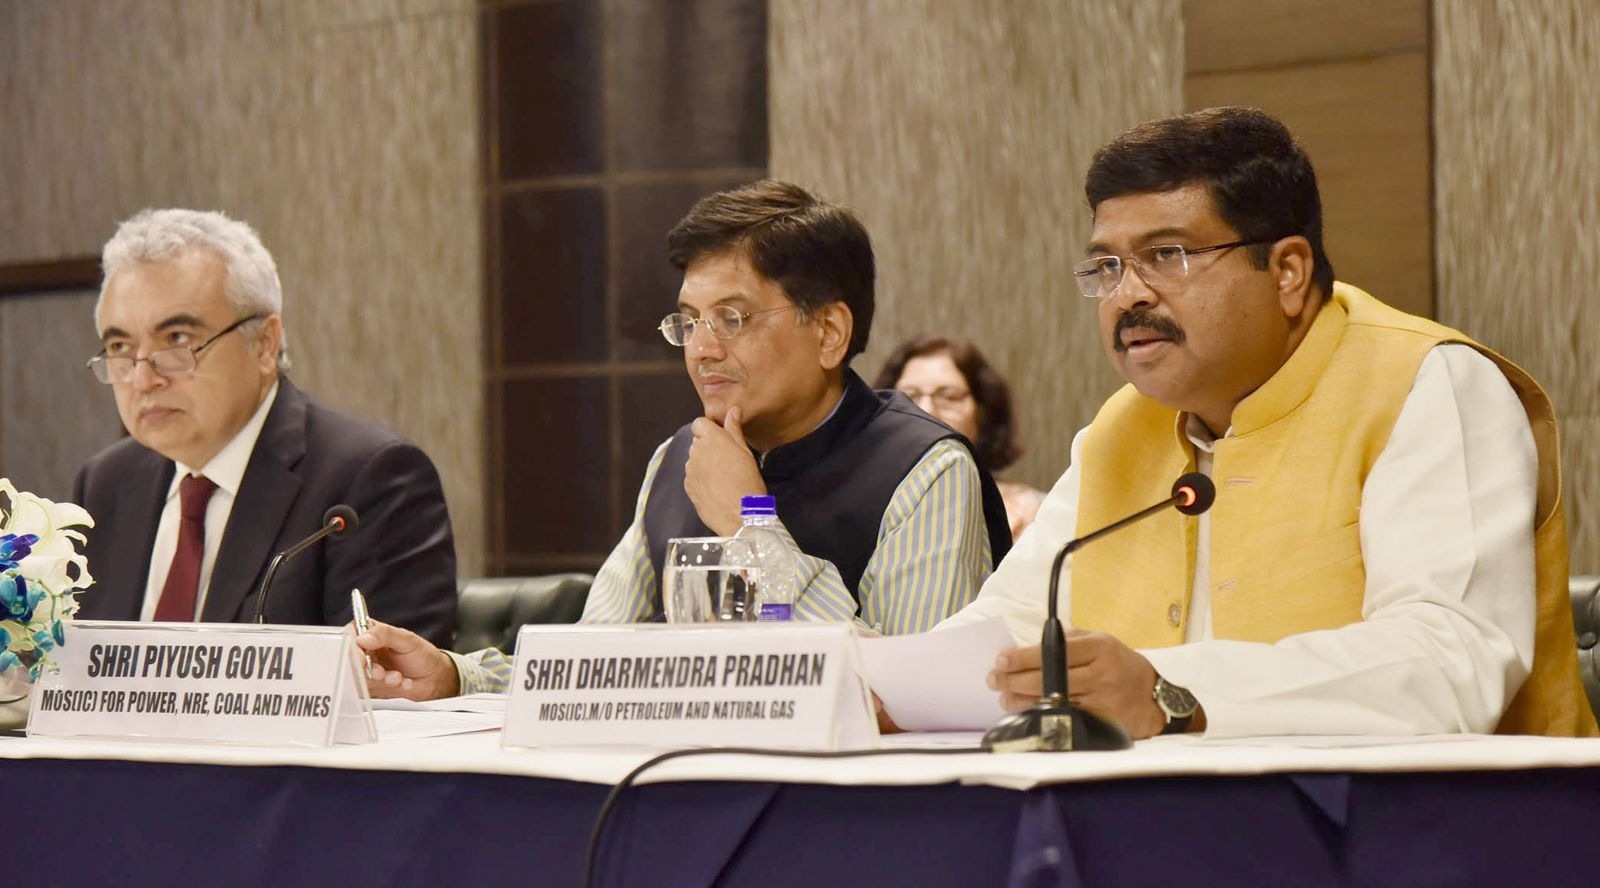 """The Minister of State for Petroleum and Natural Gas (Independent Charge), Shri Dharmendra Pradhan -right- addressing at the India – IEA: Activation of """"Association"""" status with the International Energy Agency (IEA), in New Delhi on March 30, 2017. The Minister of State for Power, Coal, New and Renewable Energy and Mines (Independent Charge), Shri Piyush Goyal -center- and the Executive Director of IEA Dr. Fatih Birol -left- are also seen. © Press Information Bureau of the Government of India."""